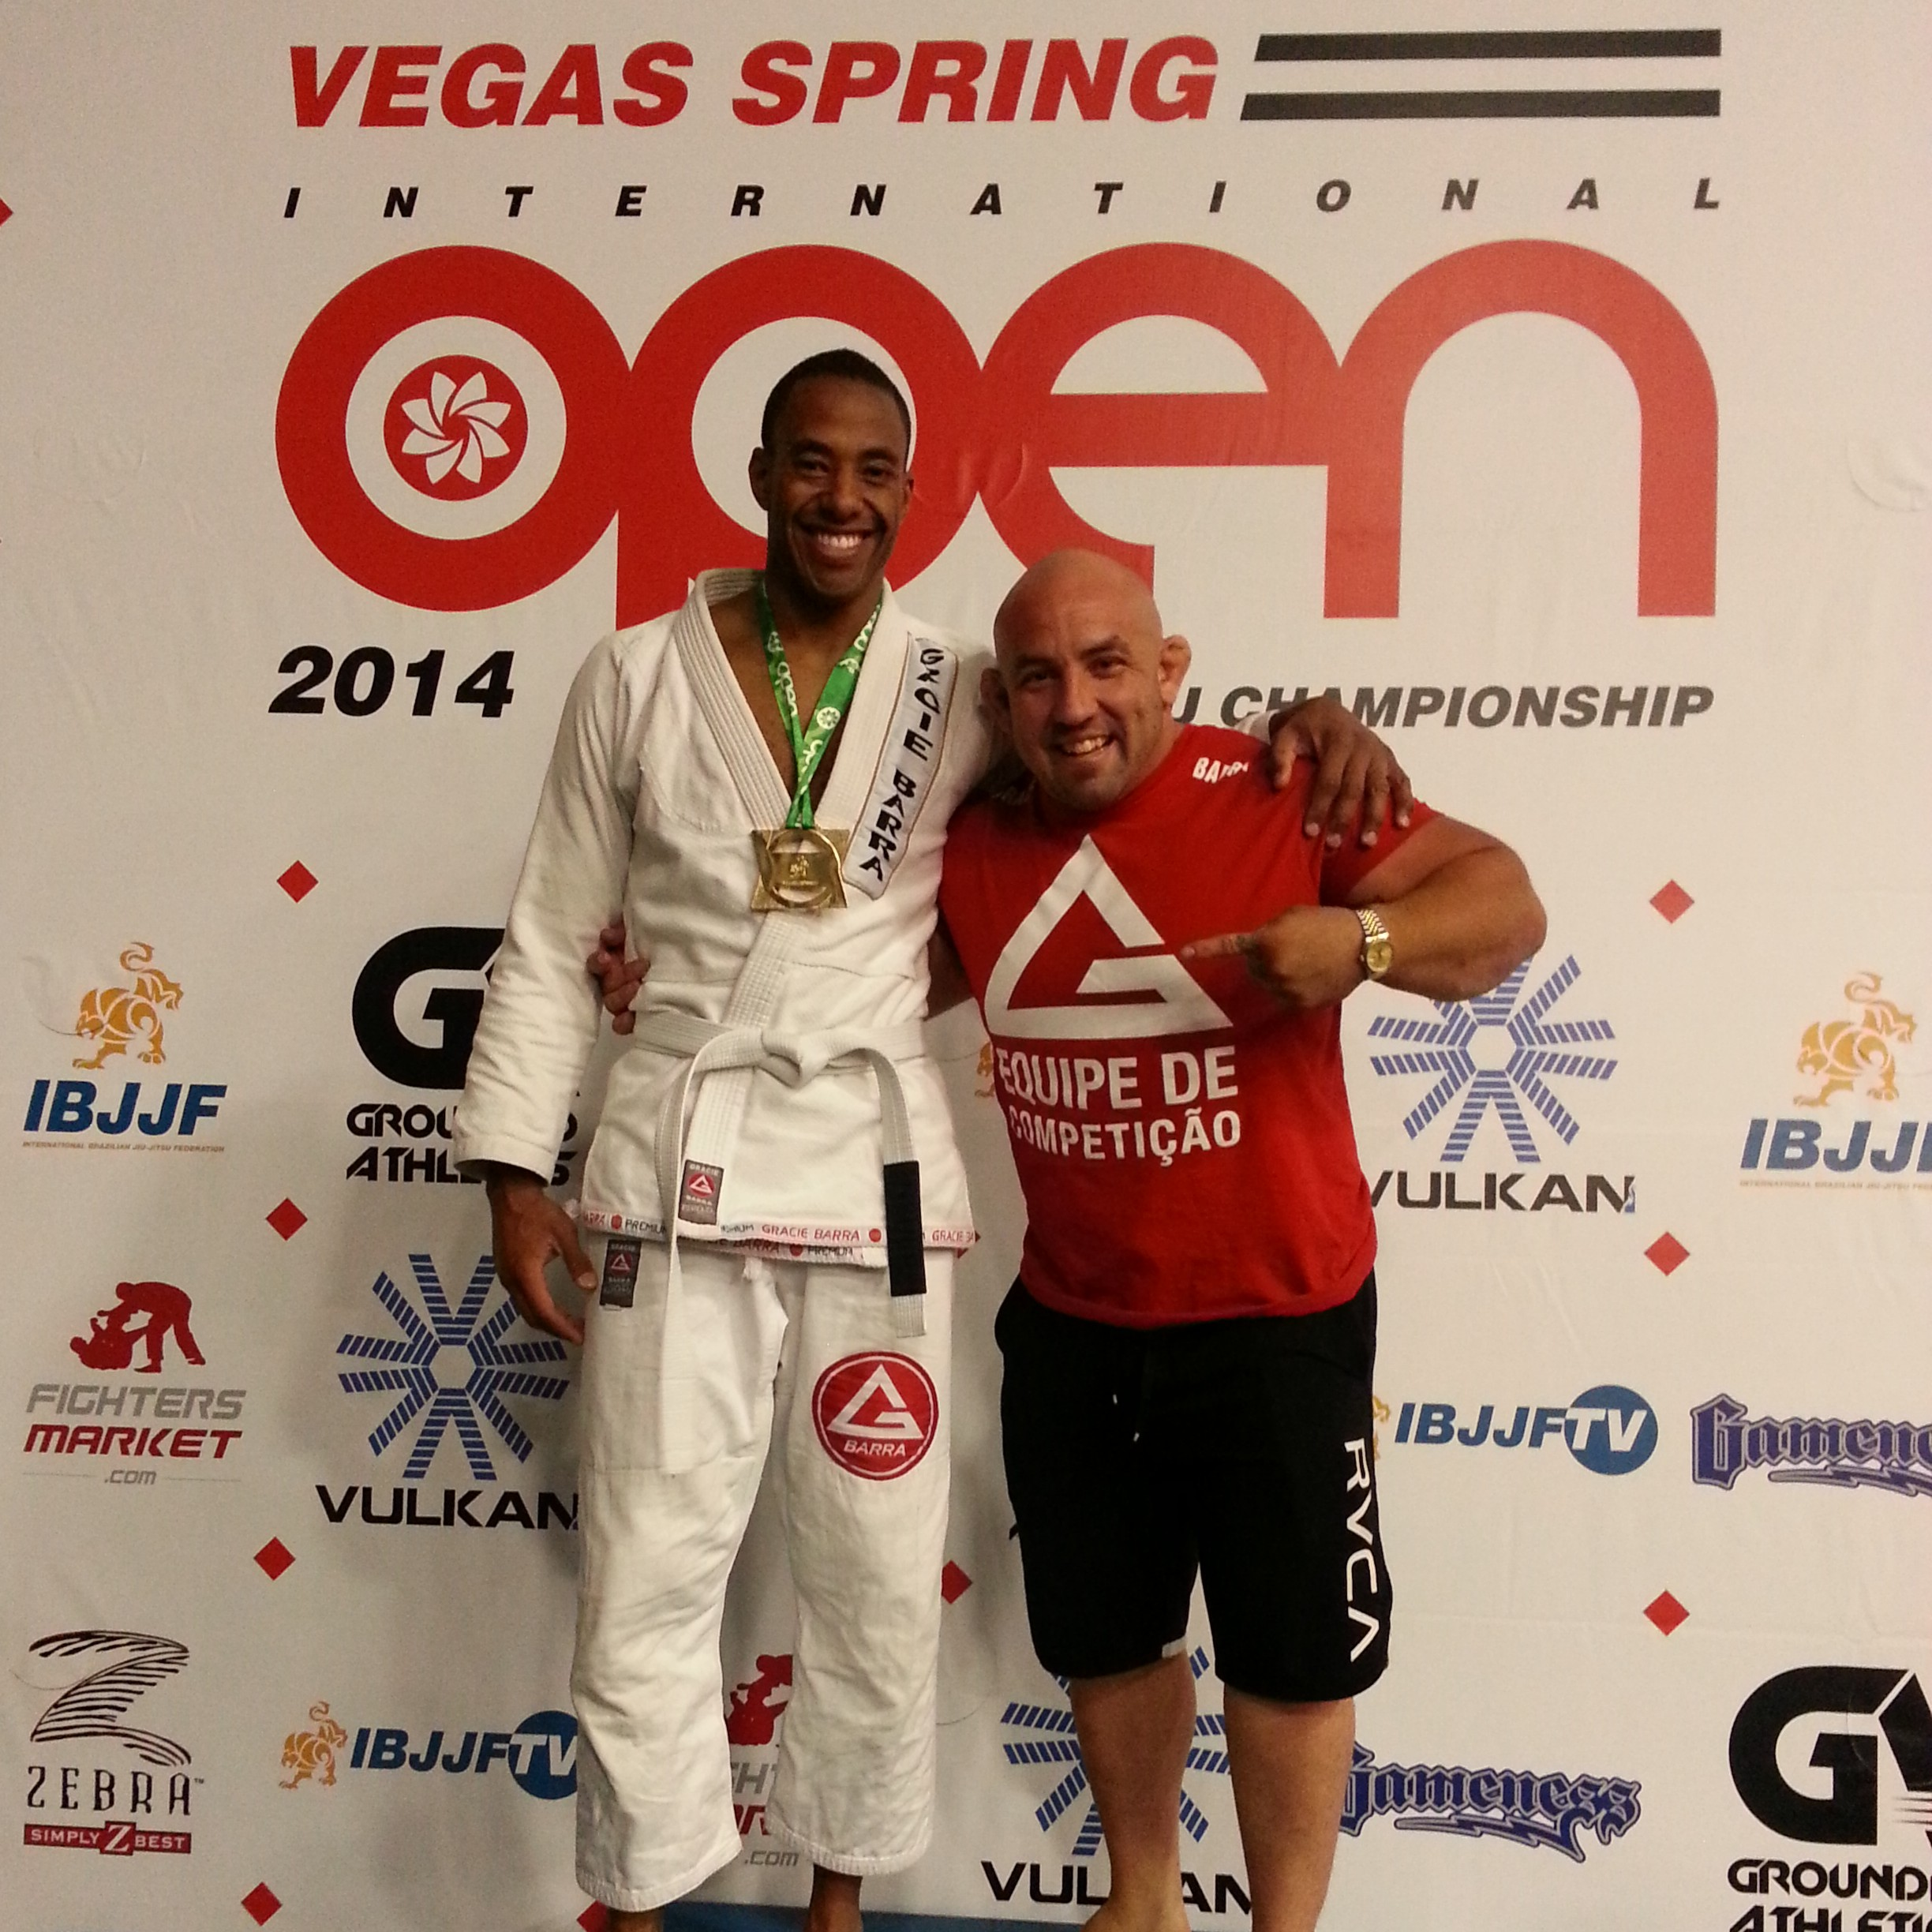 Las Vegas Spring Open May 2014 Super Heavy division 1st place, Professor Orlando and I